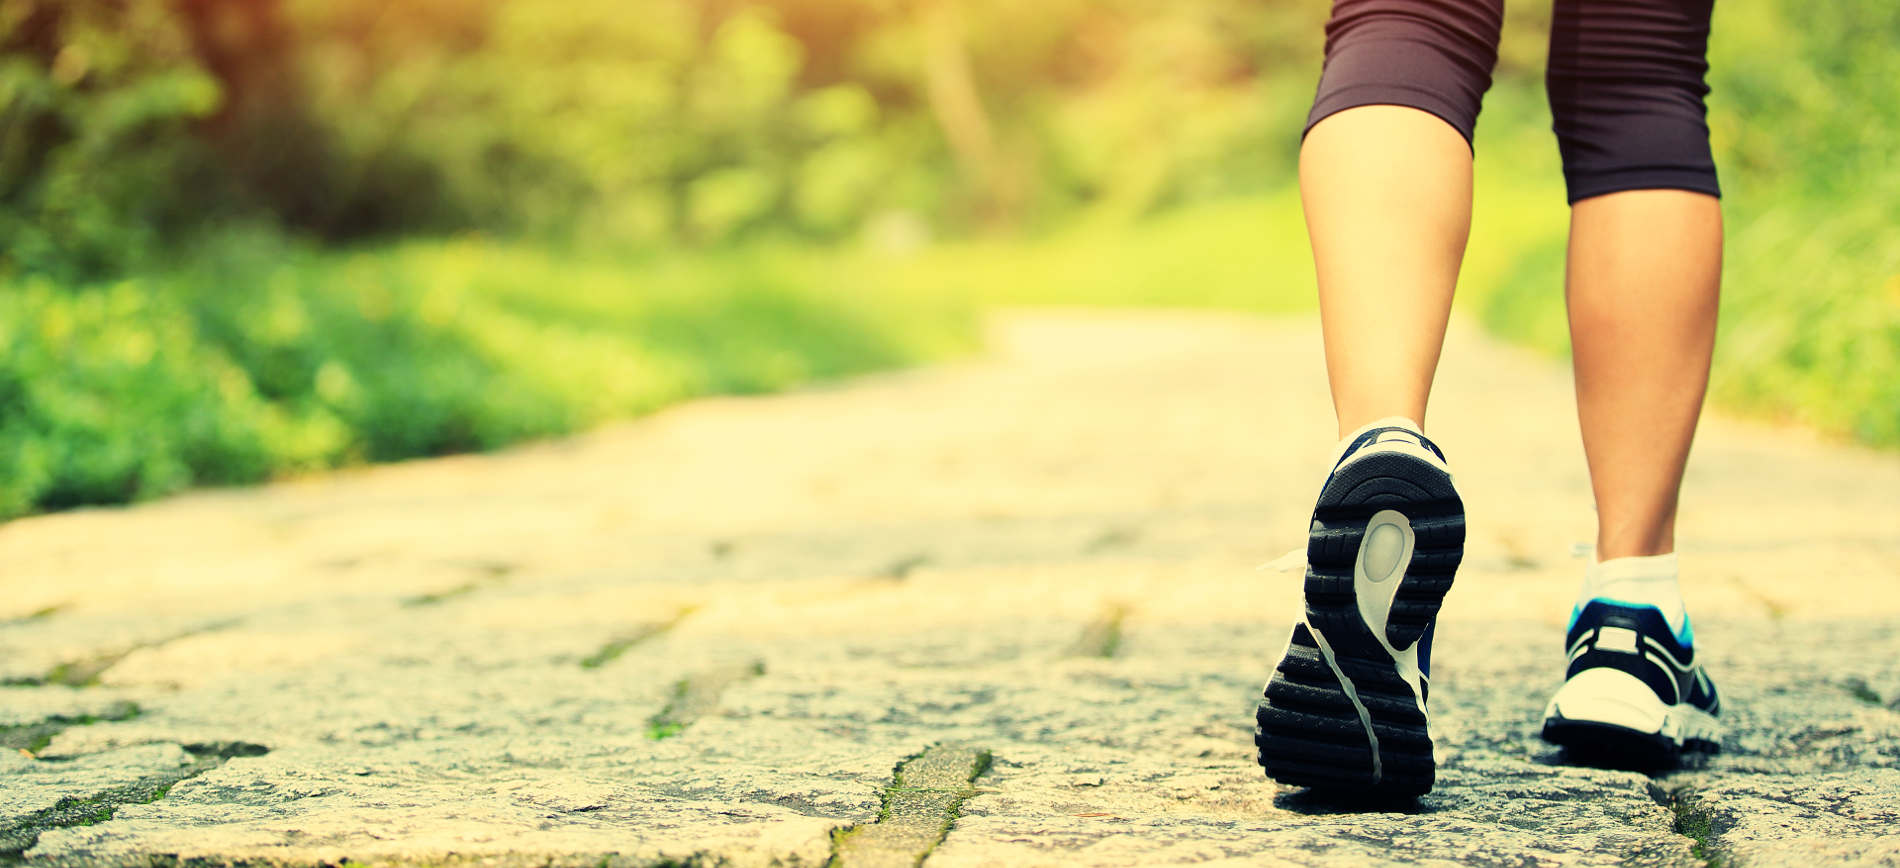 Girl jogging, fitness, nature